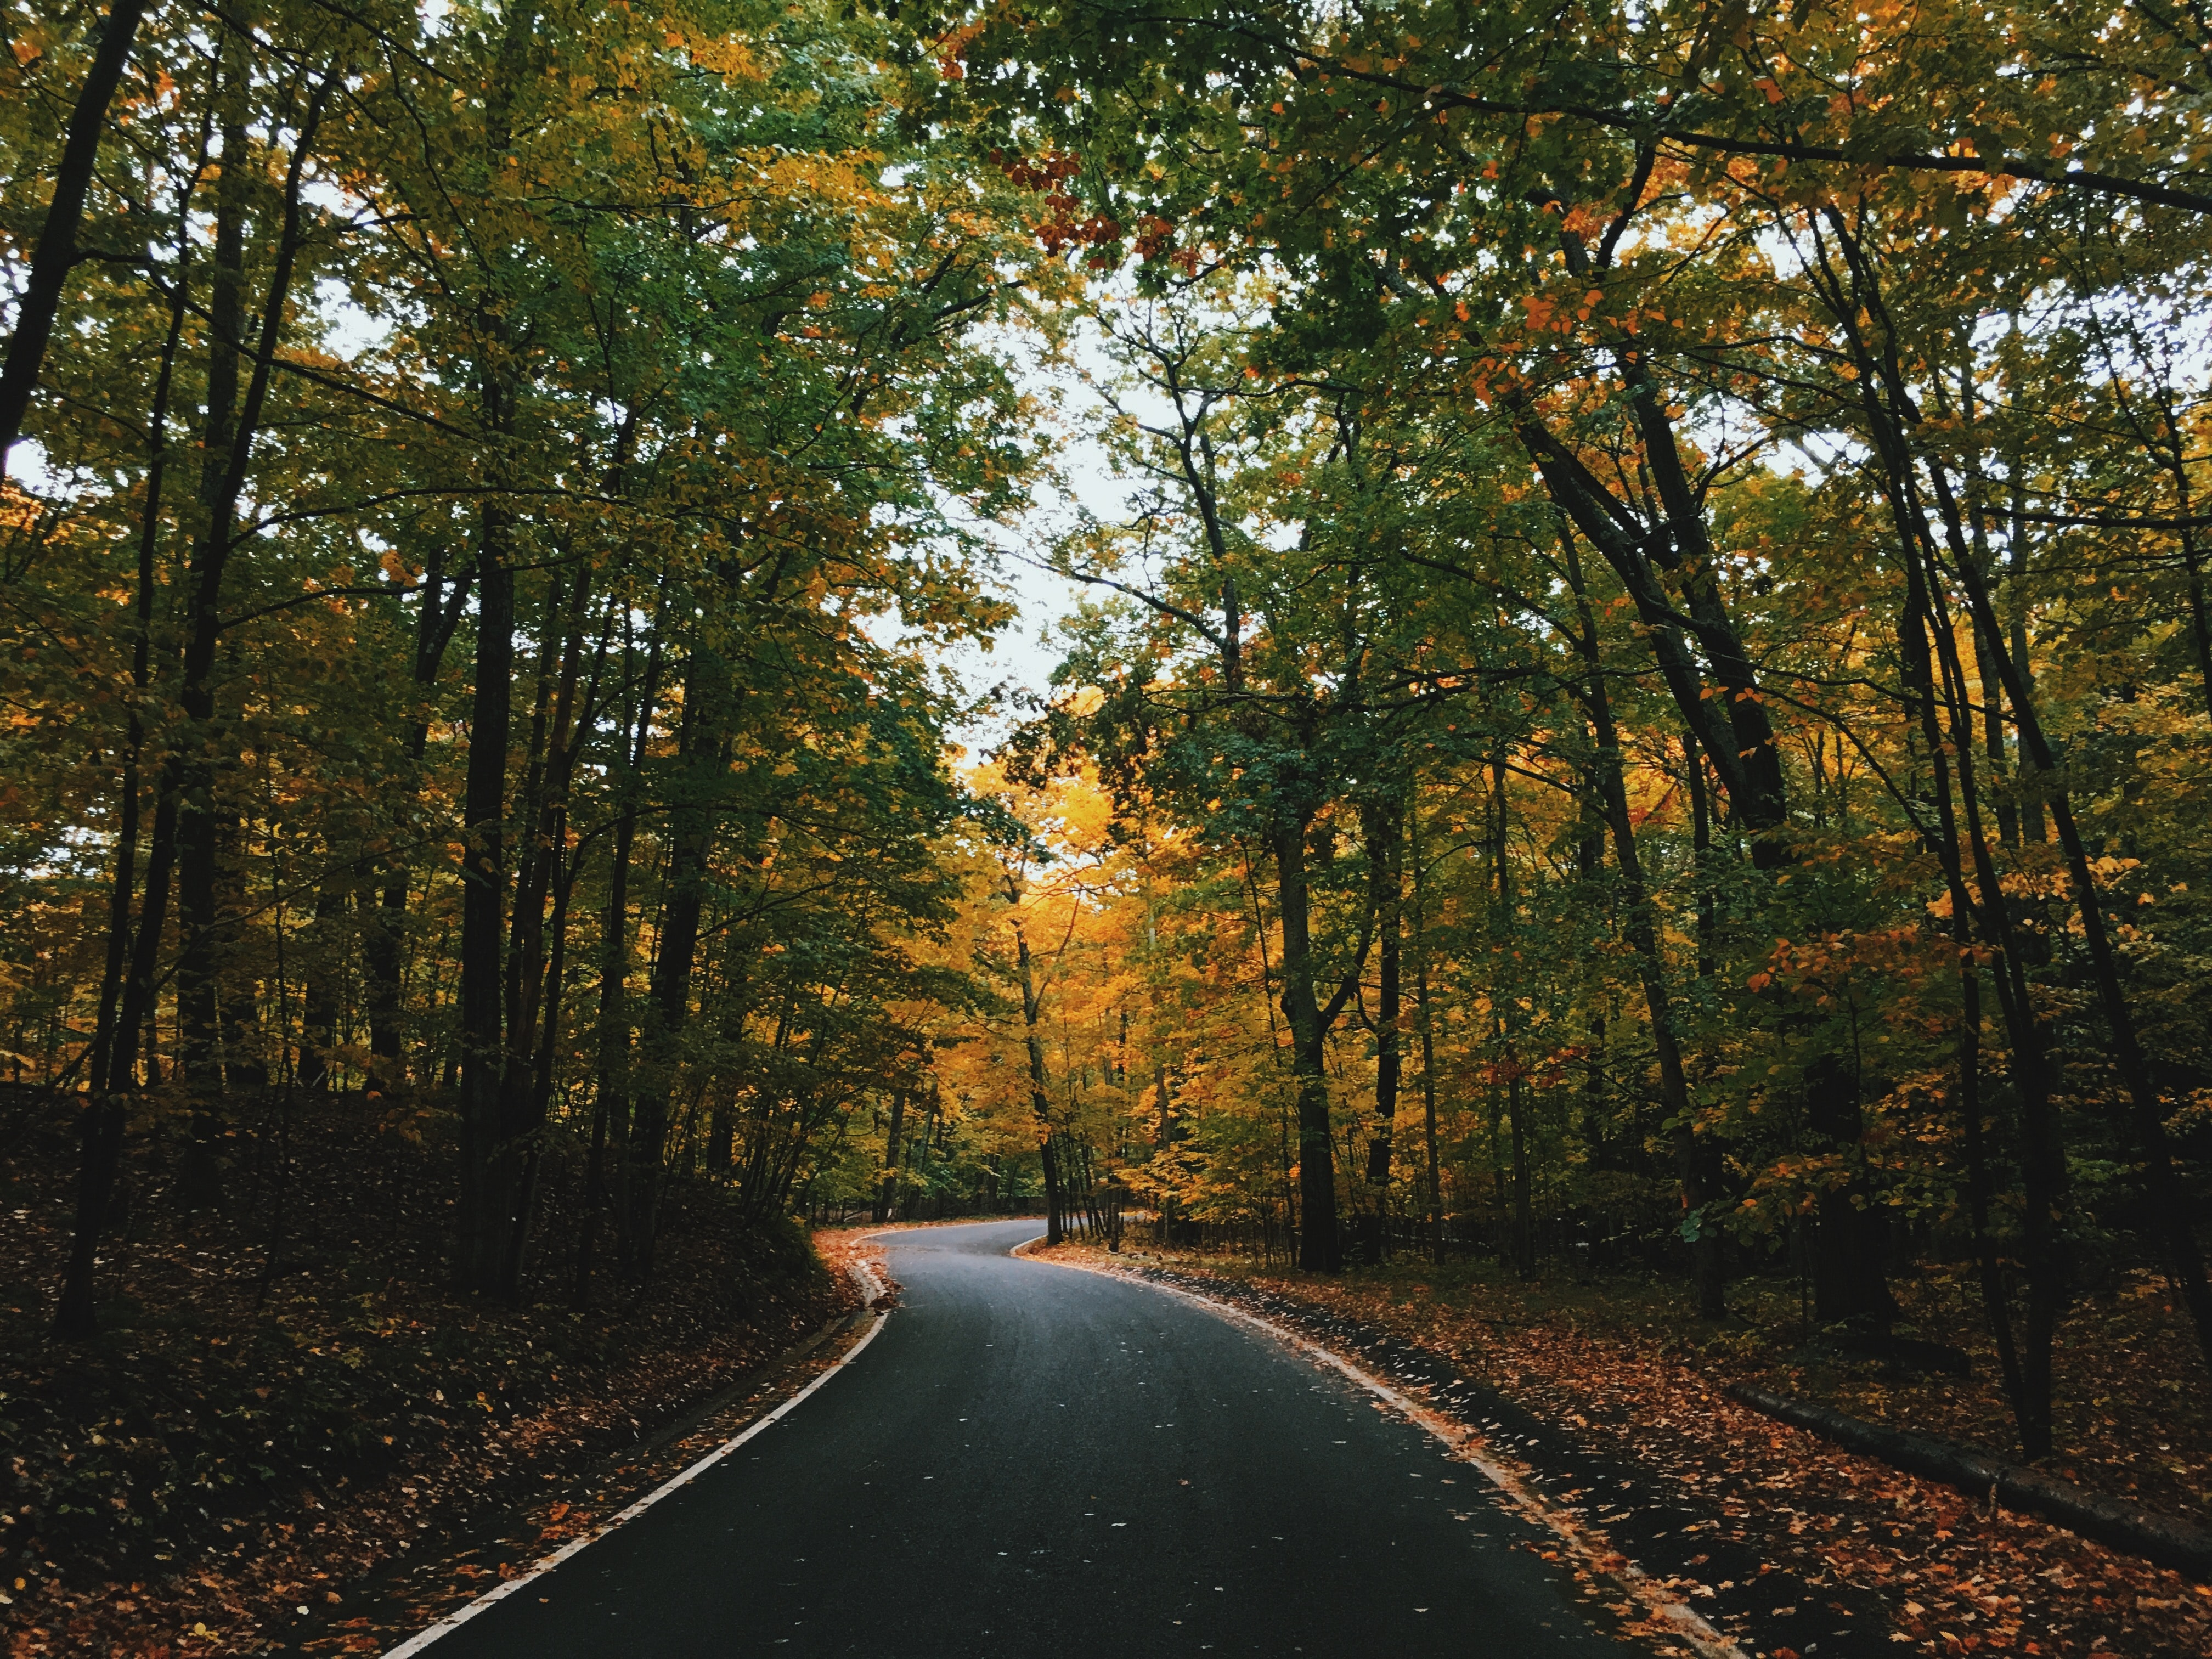 A forest road surrounded with green and yellow trees during fall in Harbor Springs, Michigan, United States